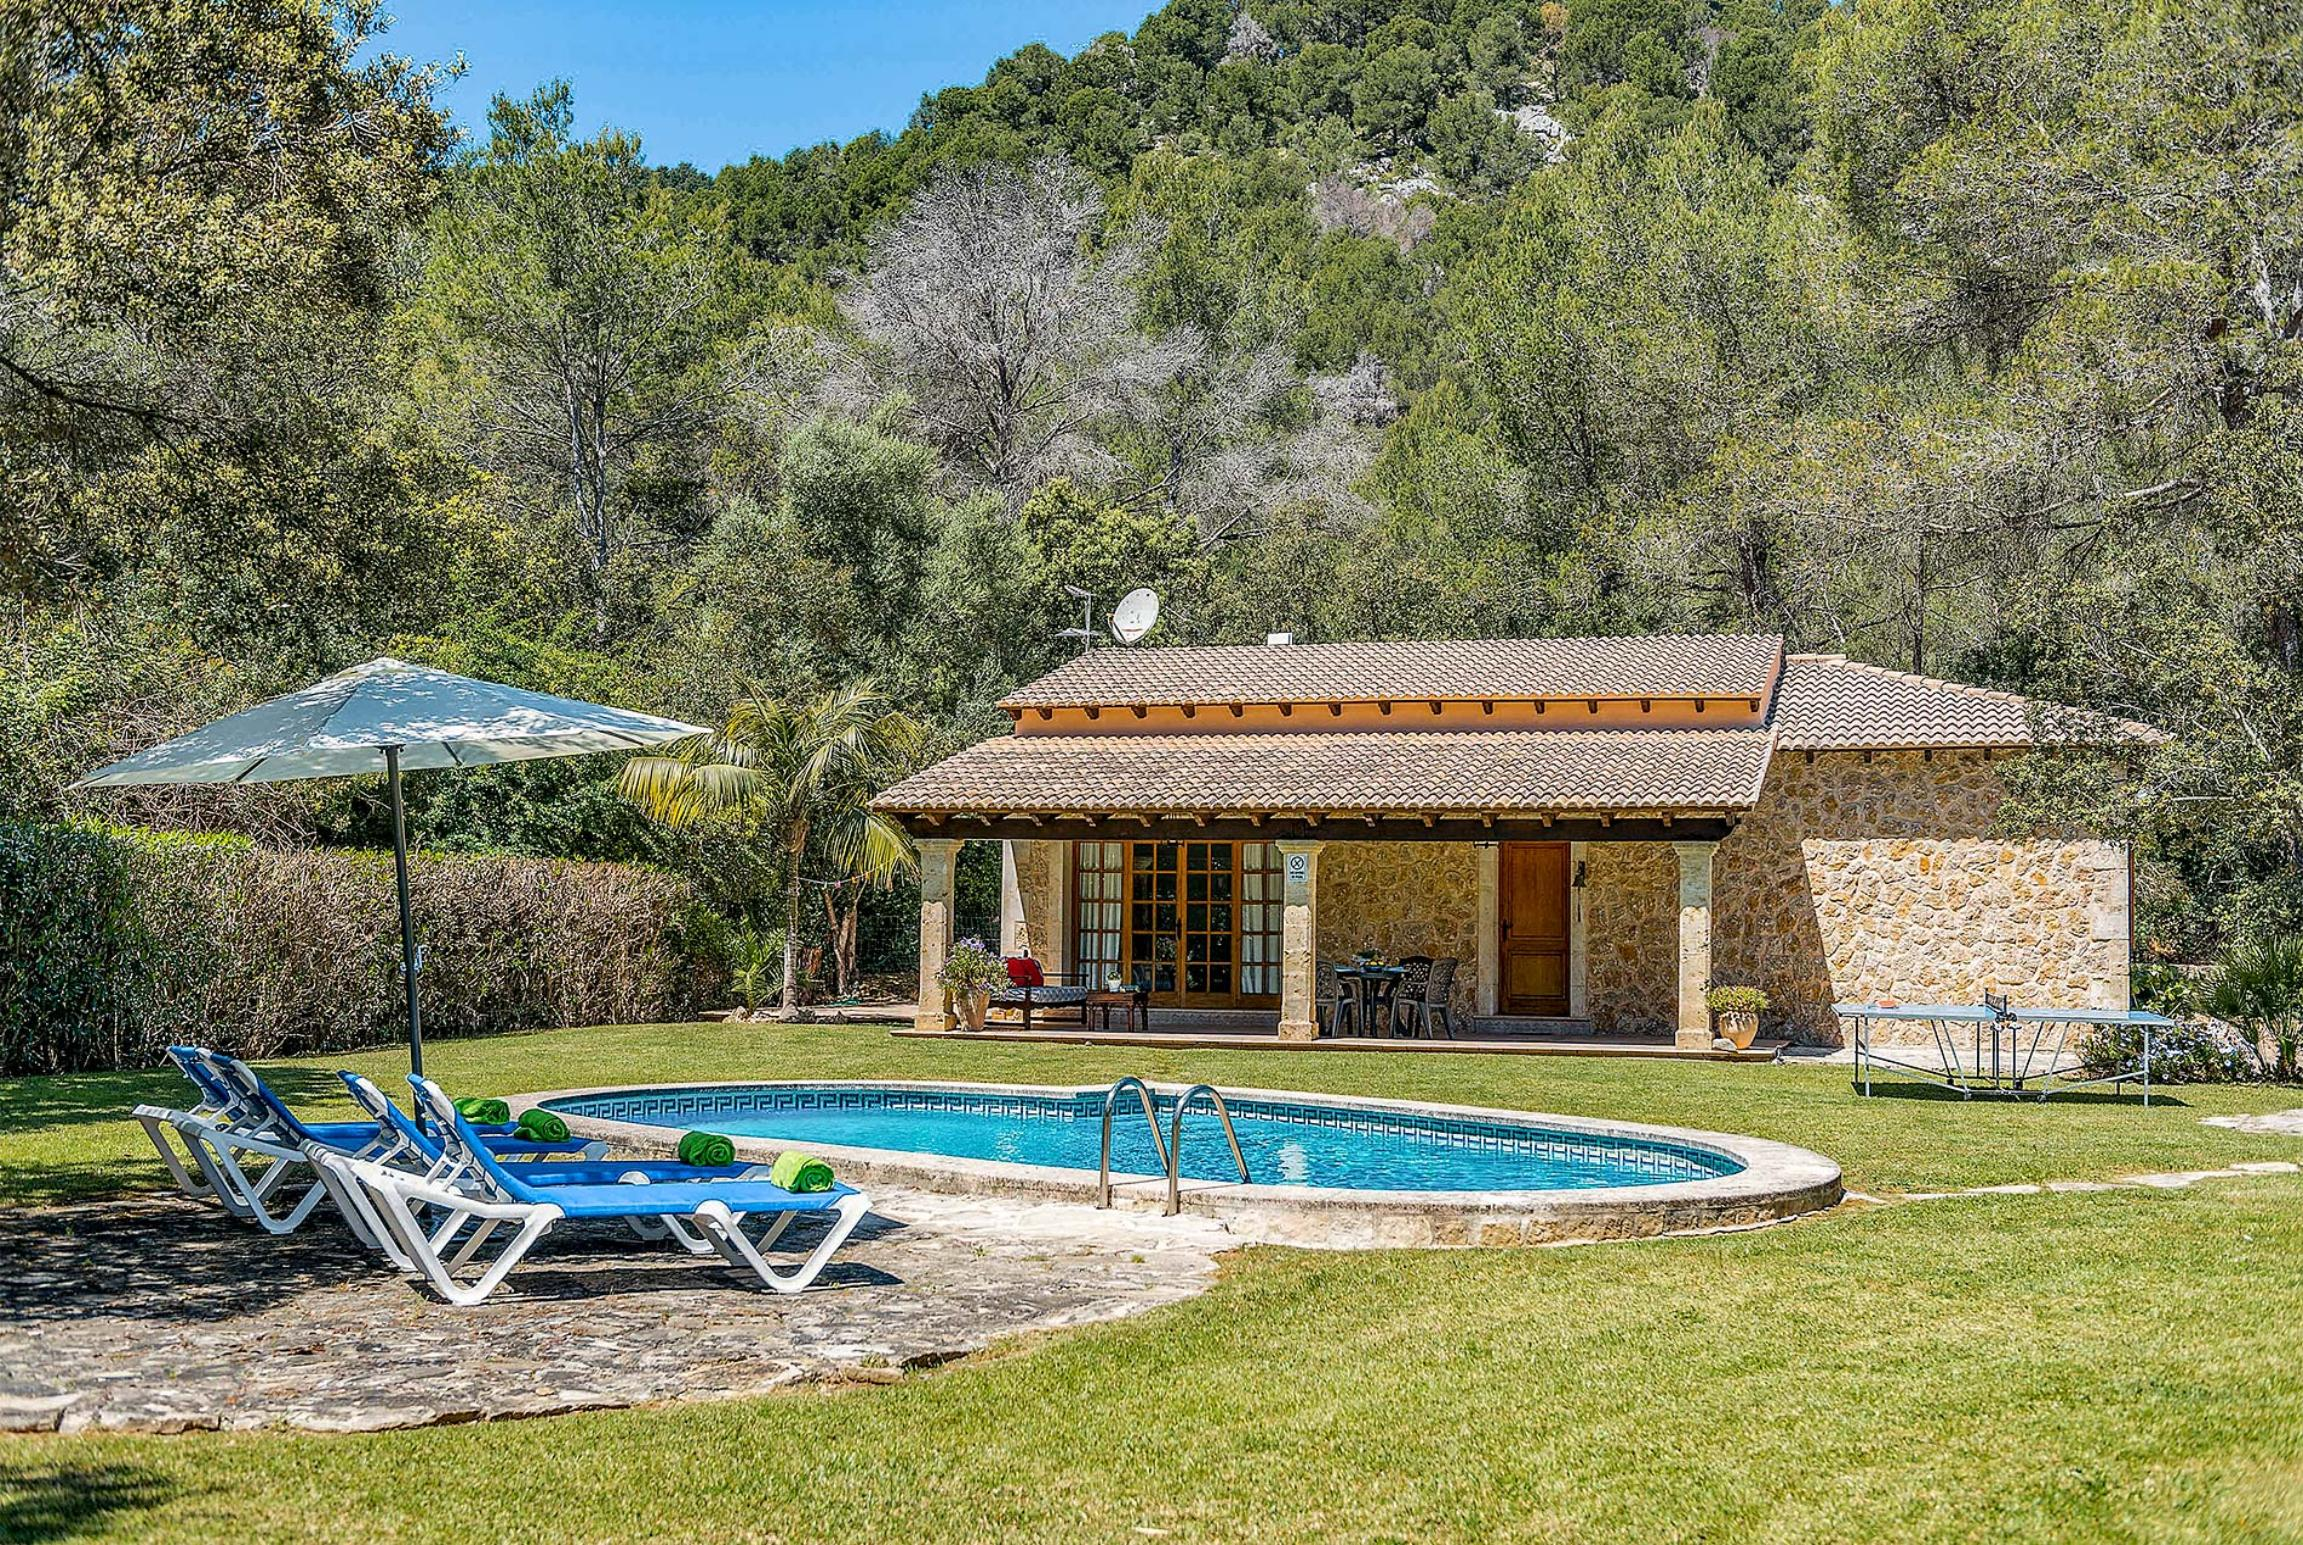 Read more about Garrigo villa